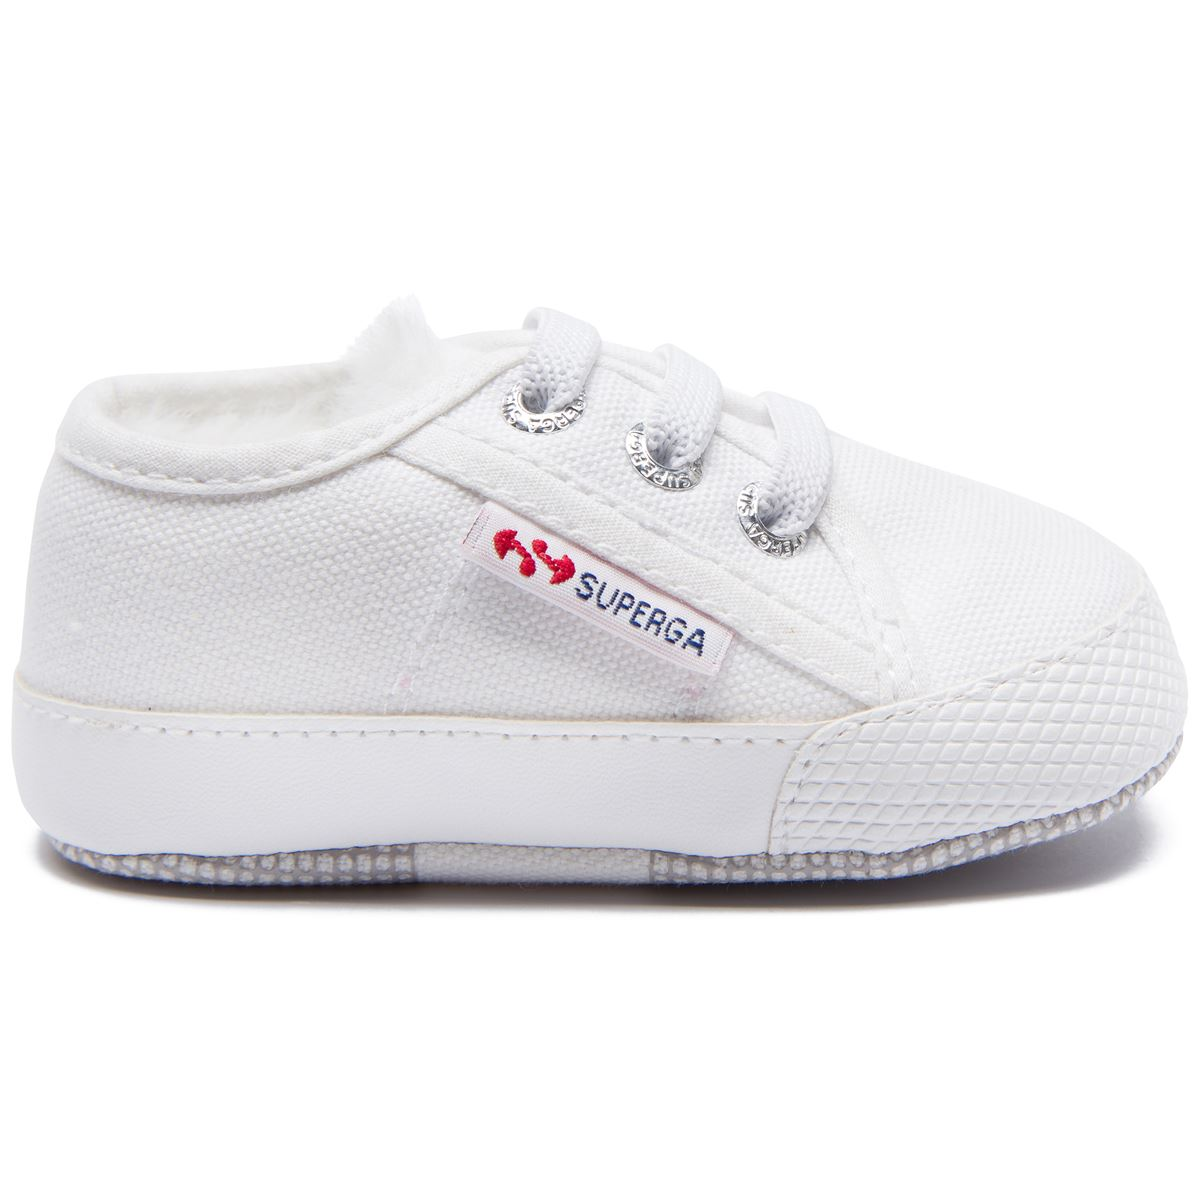 Italian Sneakers Superga for kid men and women-S111TUW